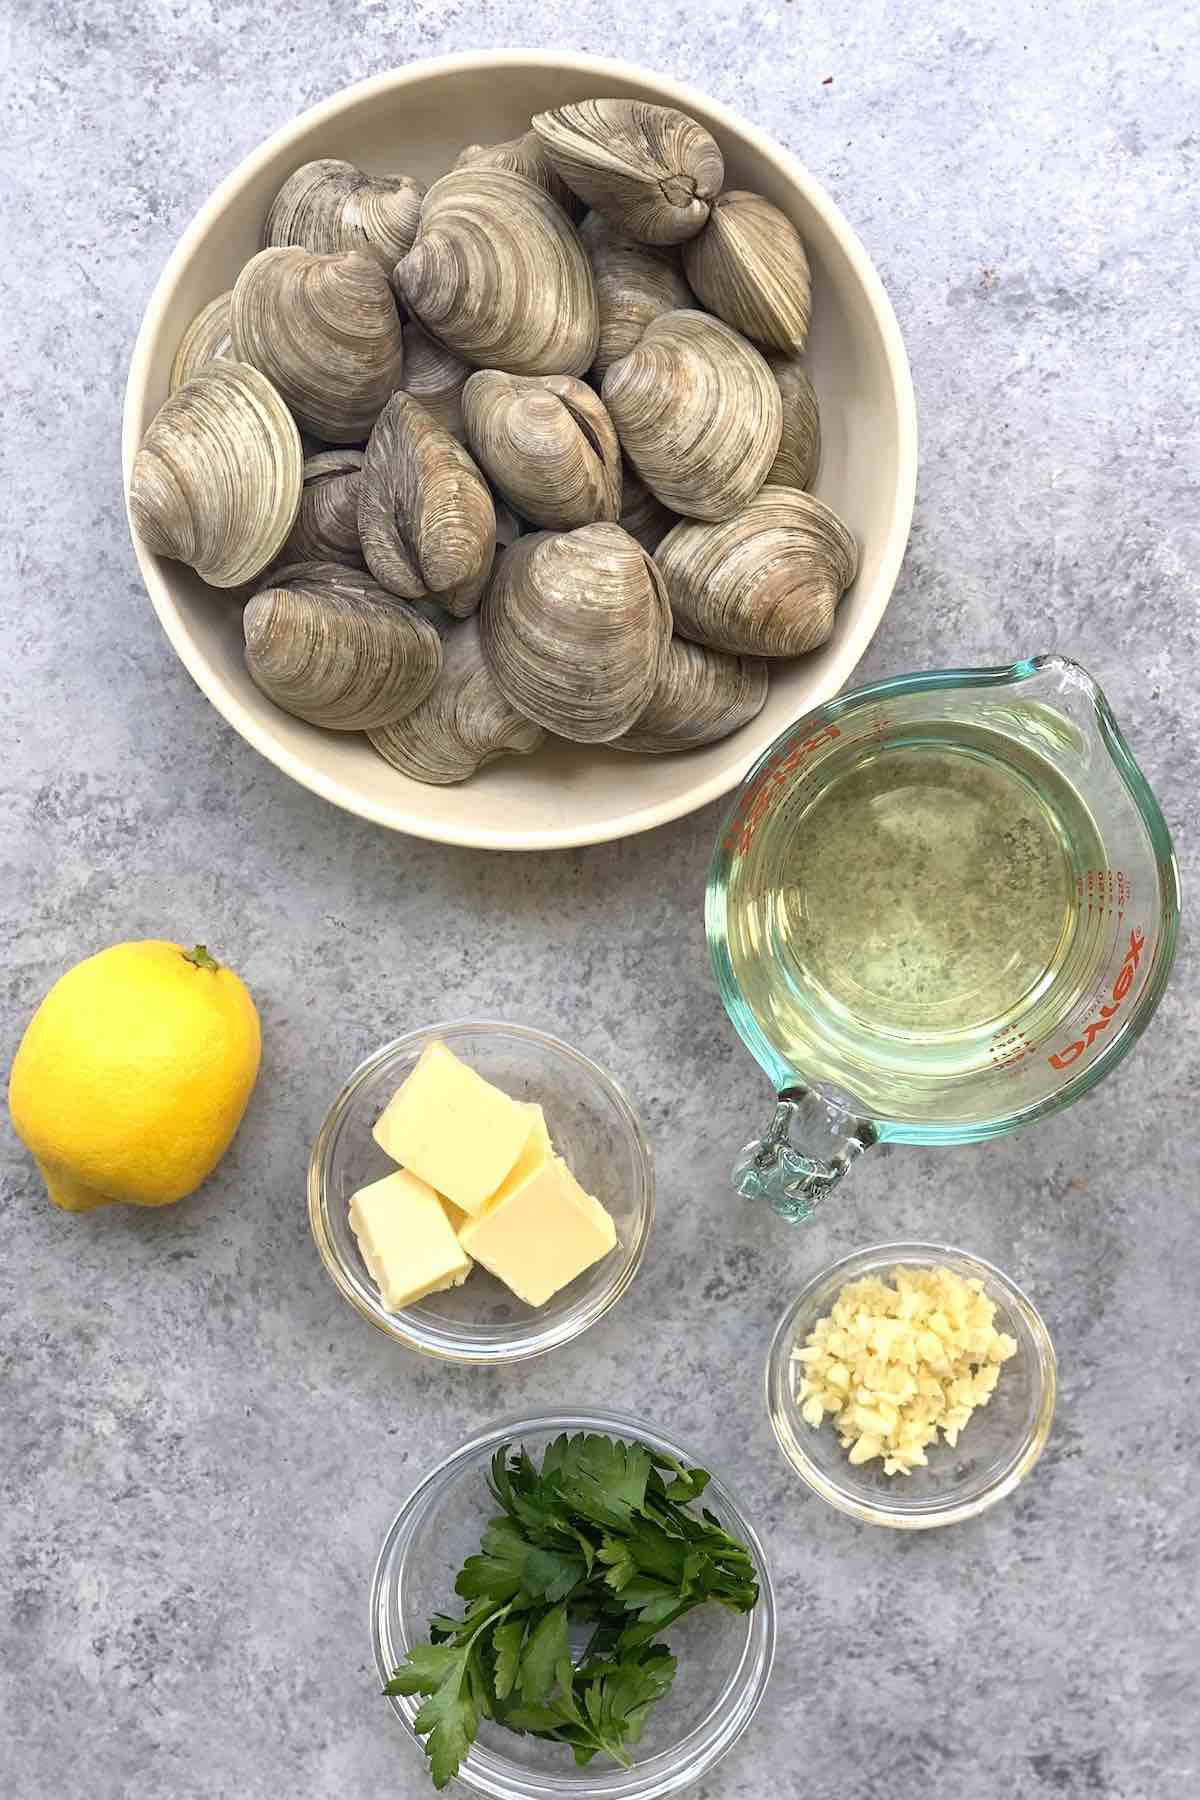 Ingredients for steamed clams